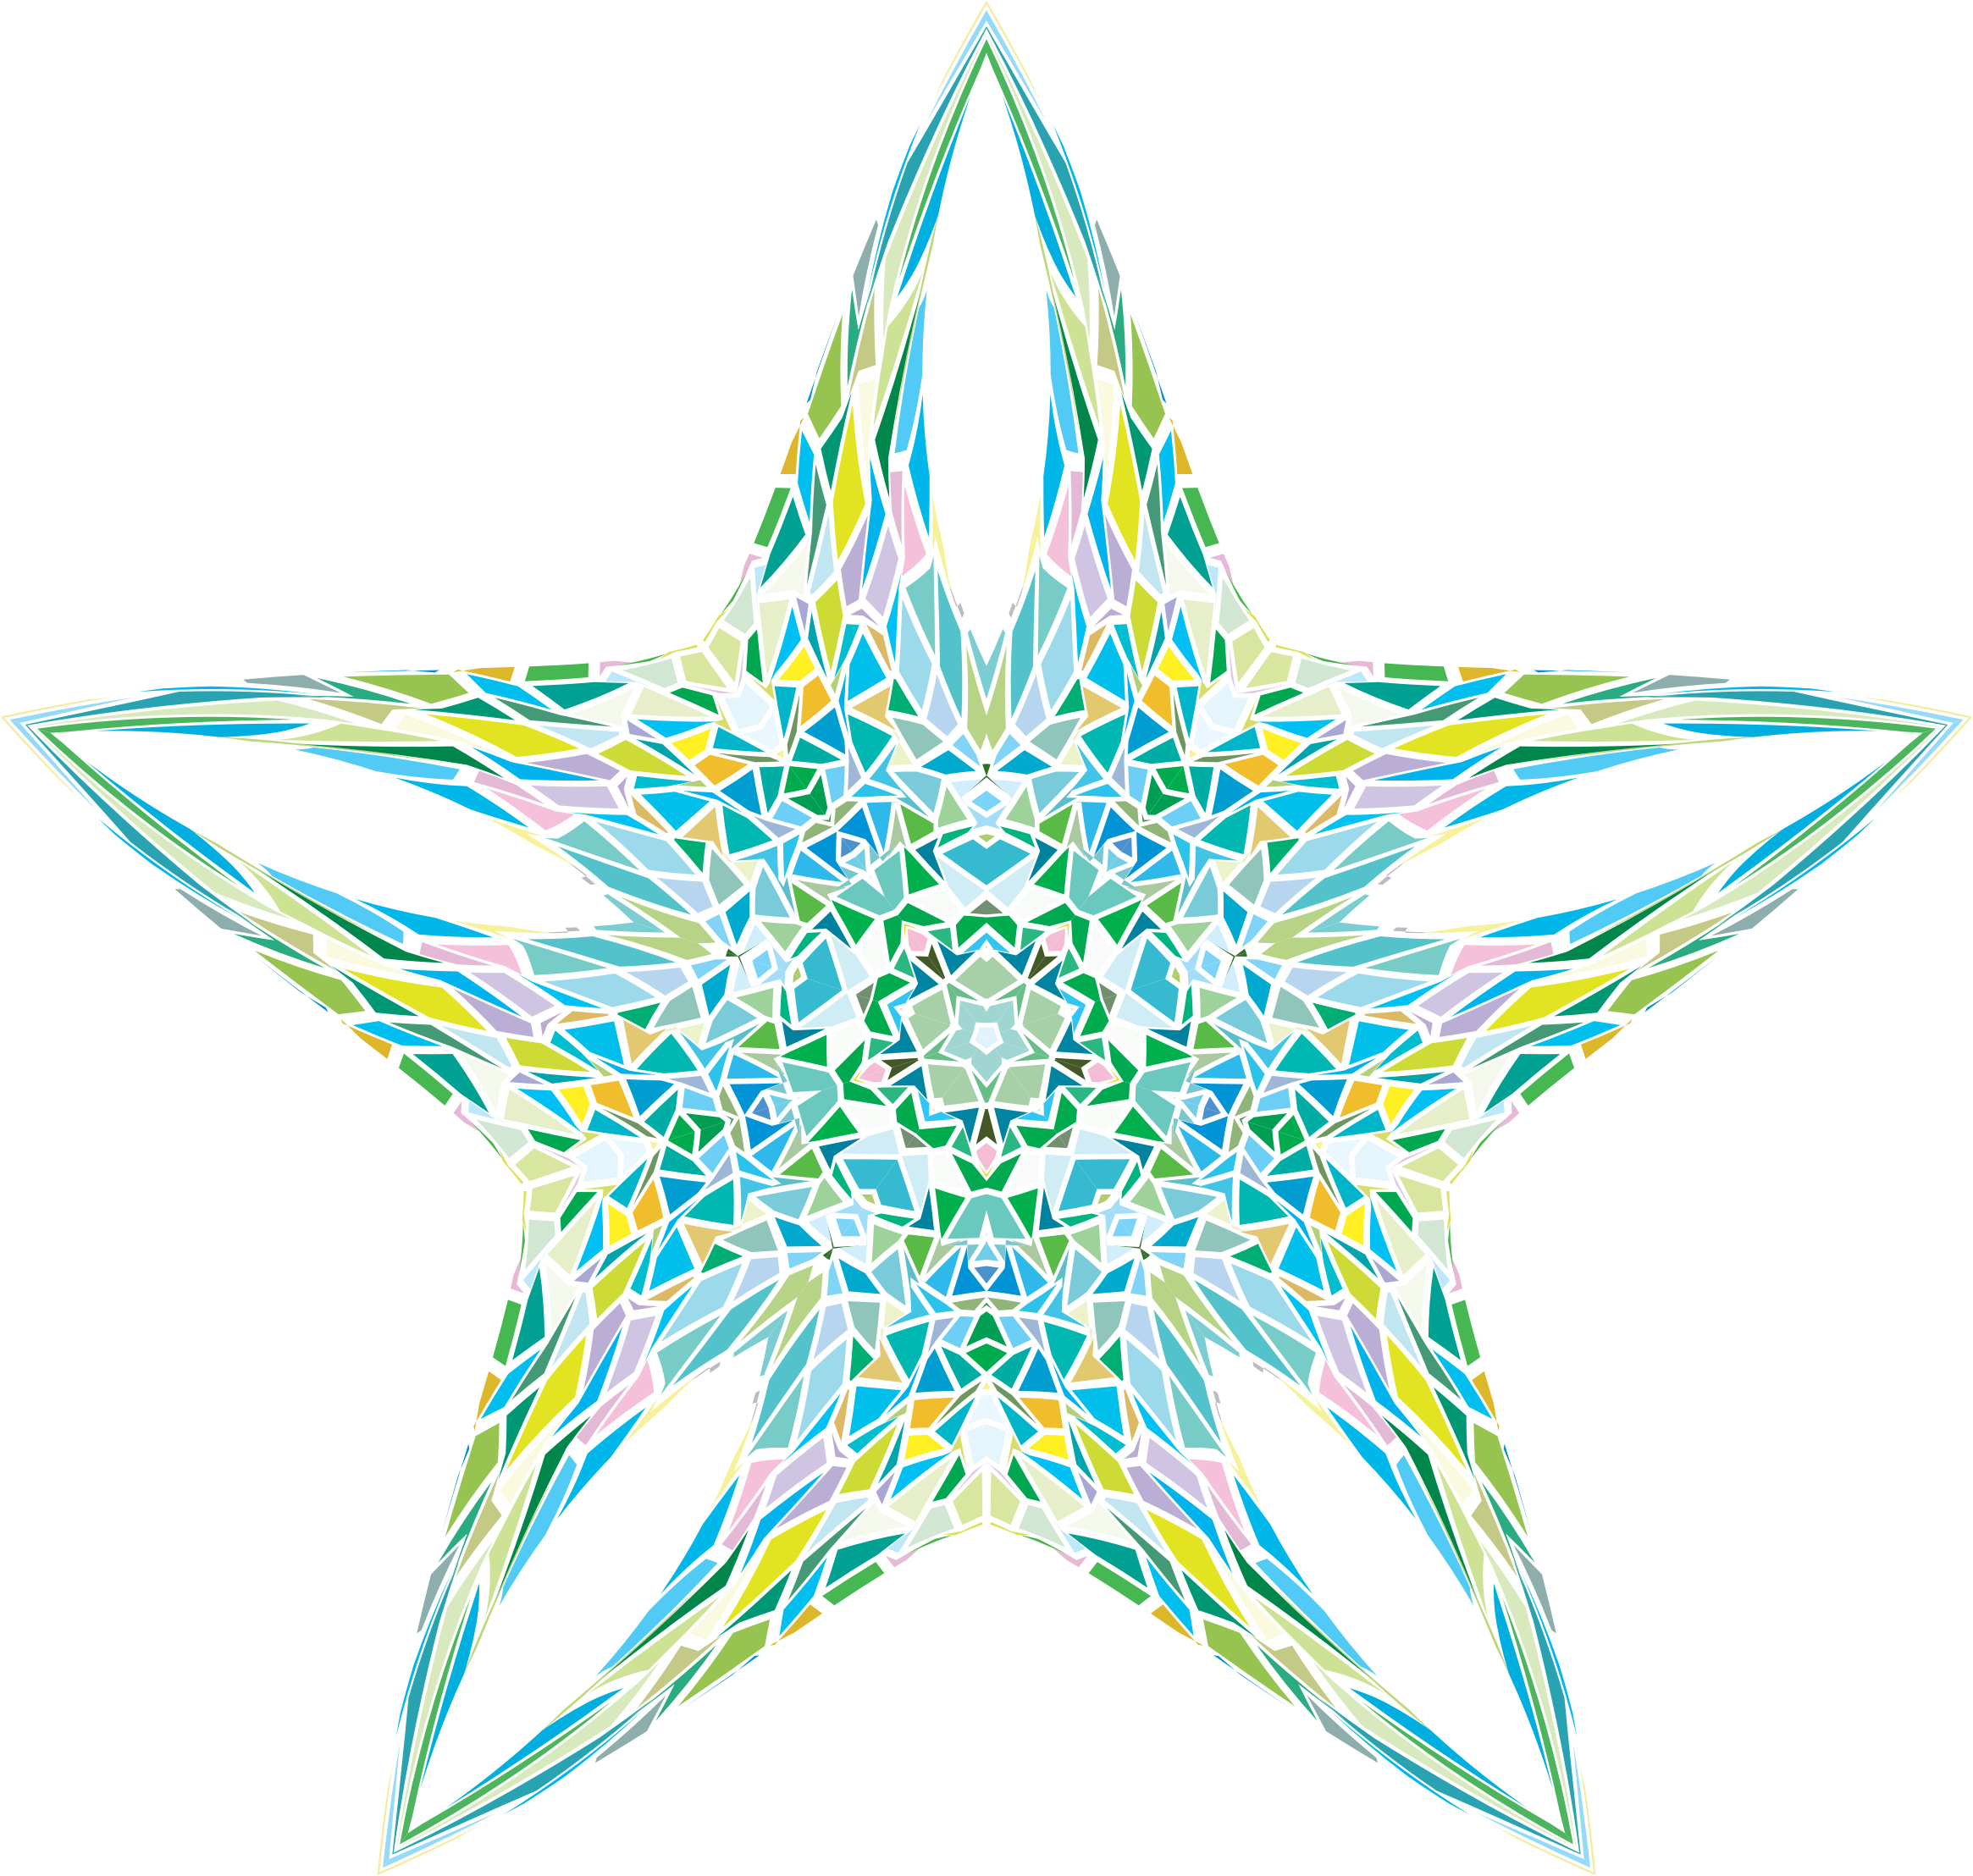 Pastel star clipart free stock Clipart - Pastel Star free stock